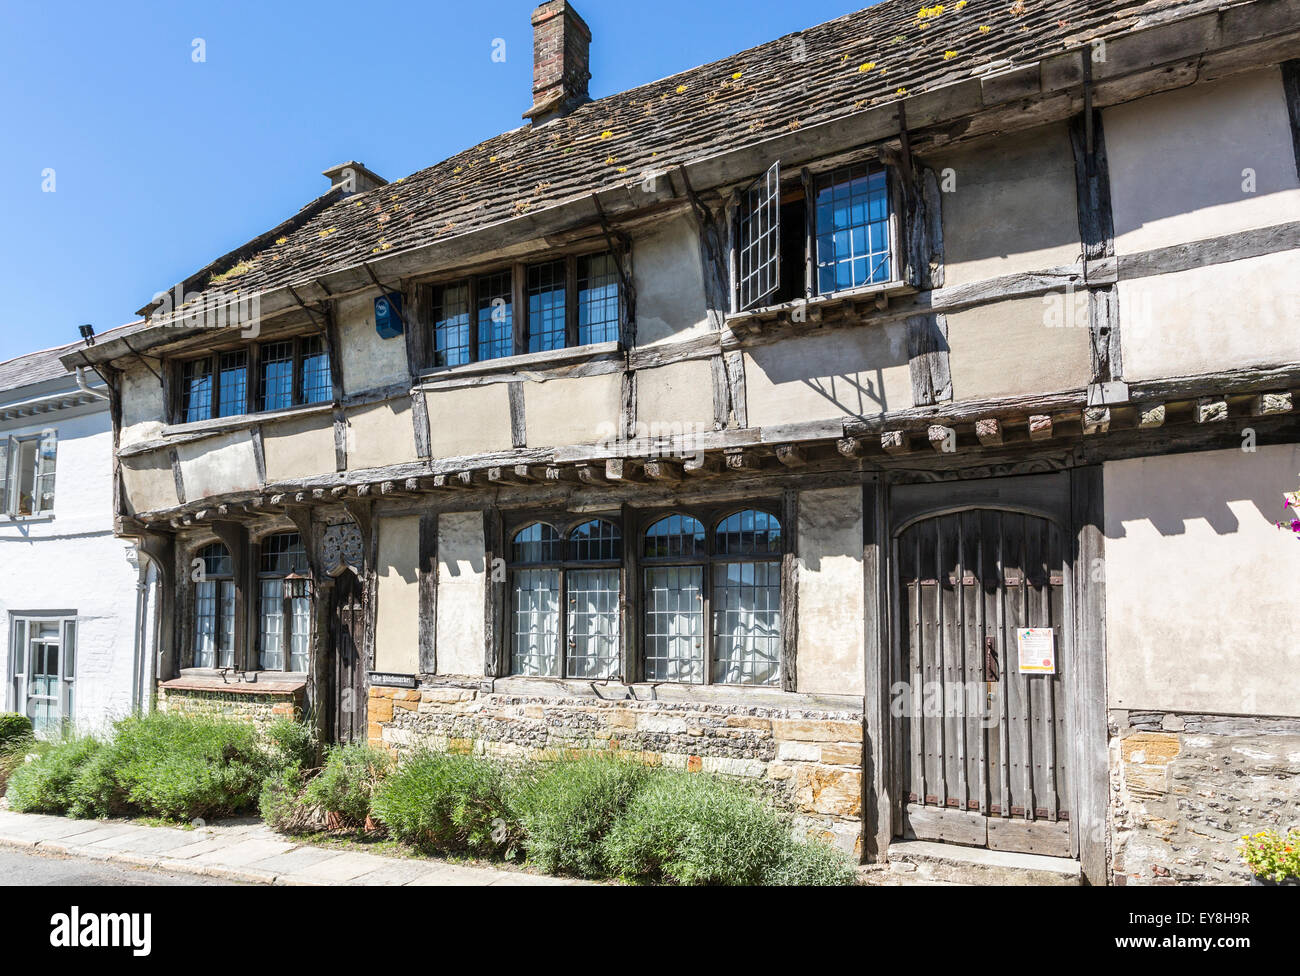 Old traditional timbered cottages, Cerne Abbas, Dorset, south-west England, with wooden doors and a slate tiled - Stock Image